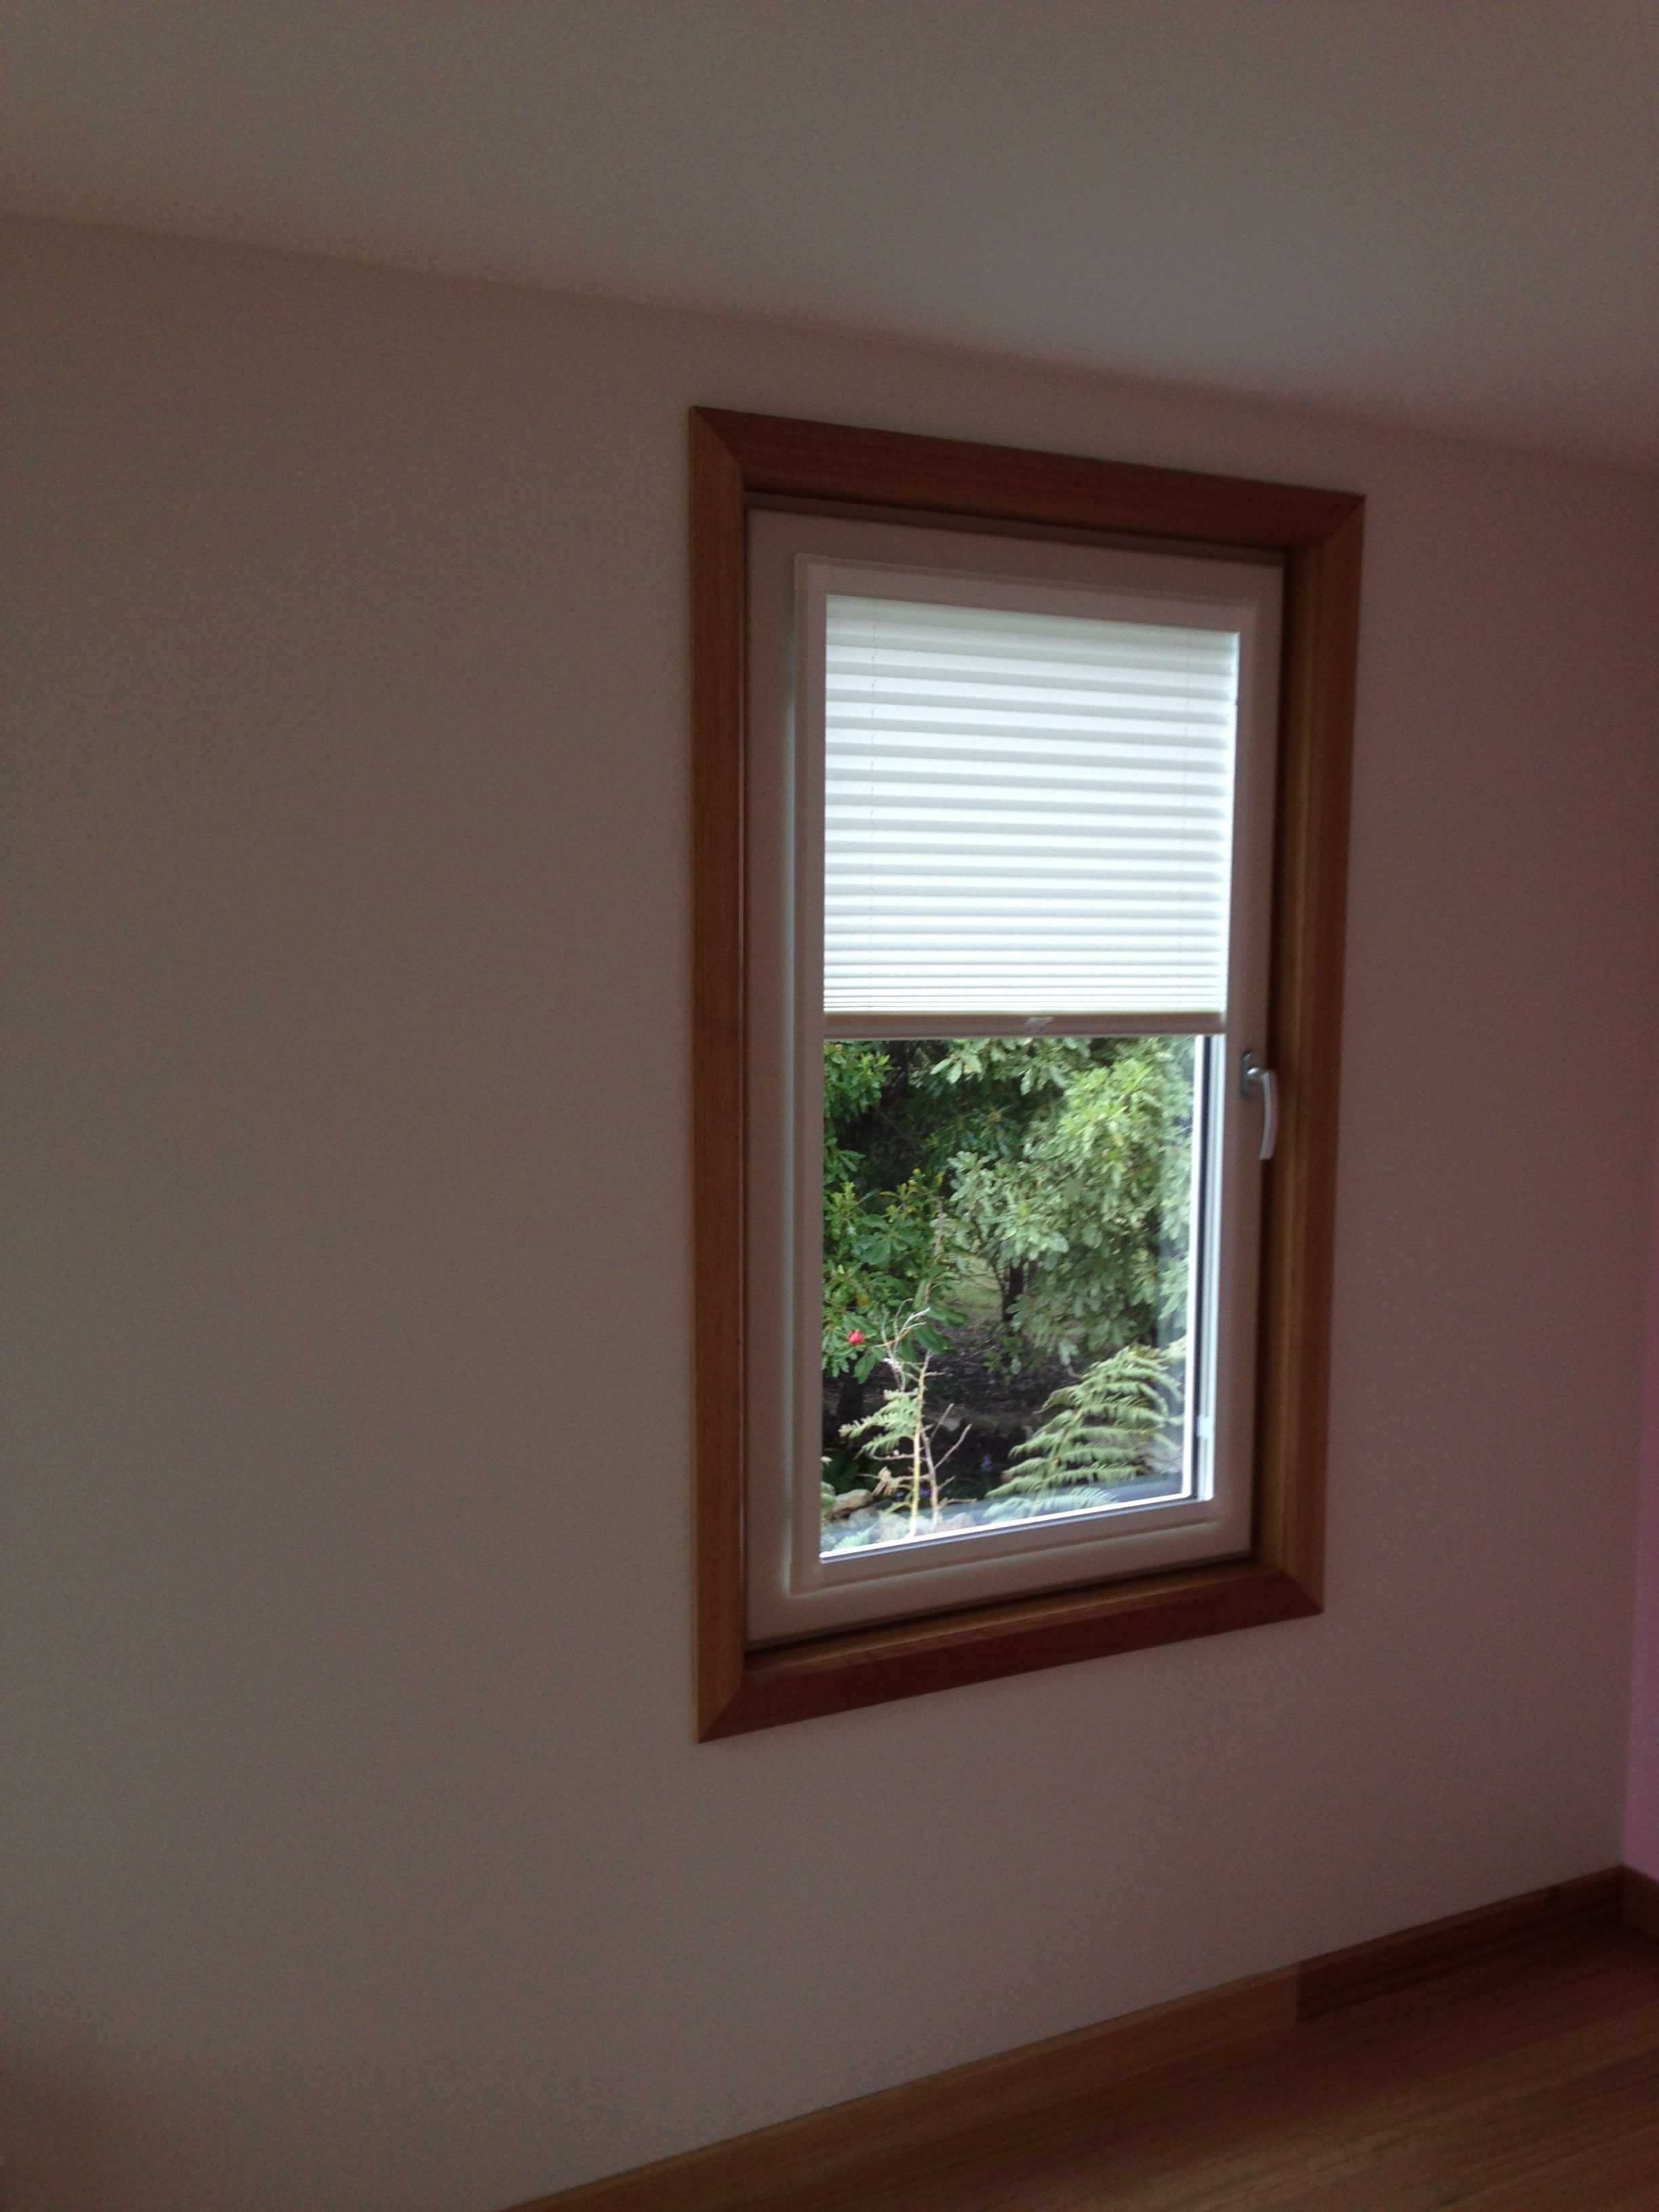 Perfect Fit Blinds for UPVC windows in Hobart